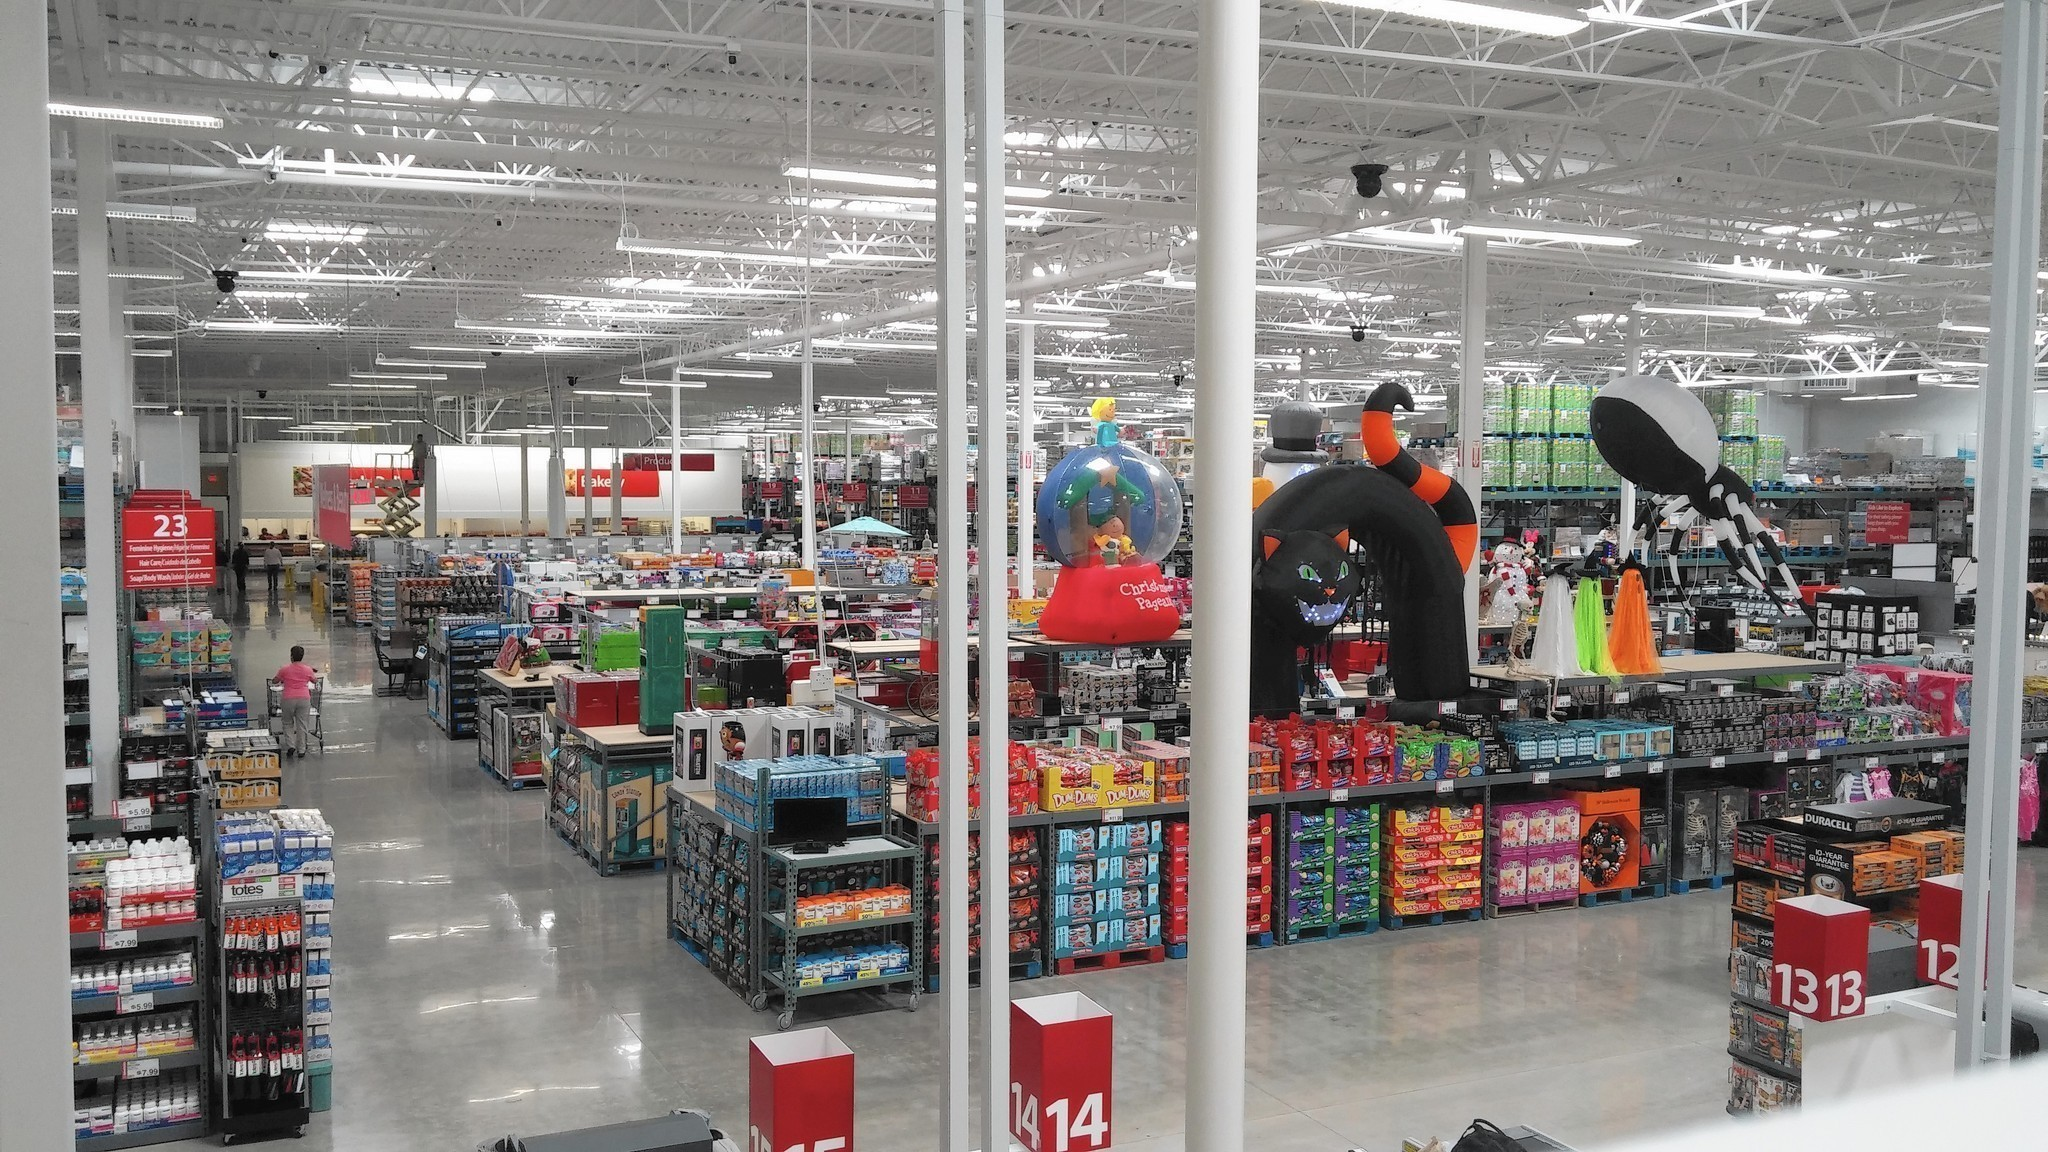 Get warehouse savings, every day, at BJ's Wholesale Club. The company offers big discounts on groceries, electronics, appliances, pet supplies, sporting equipment, jewelry, and more.